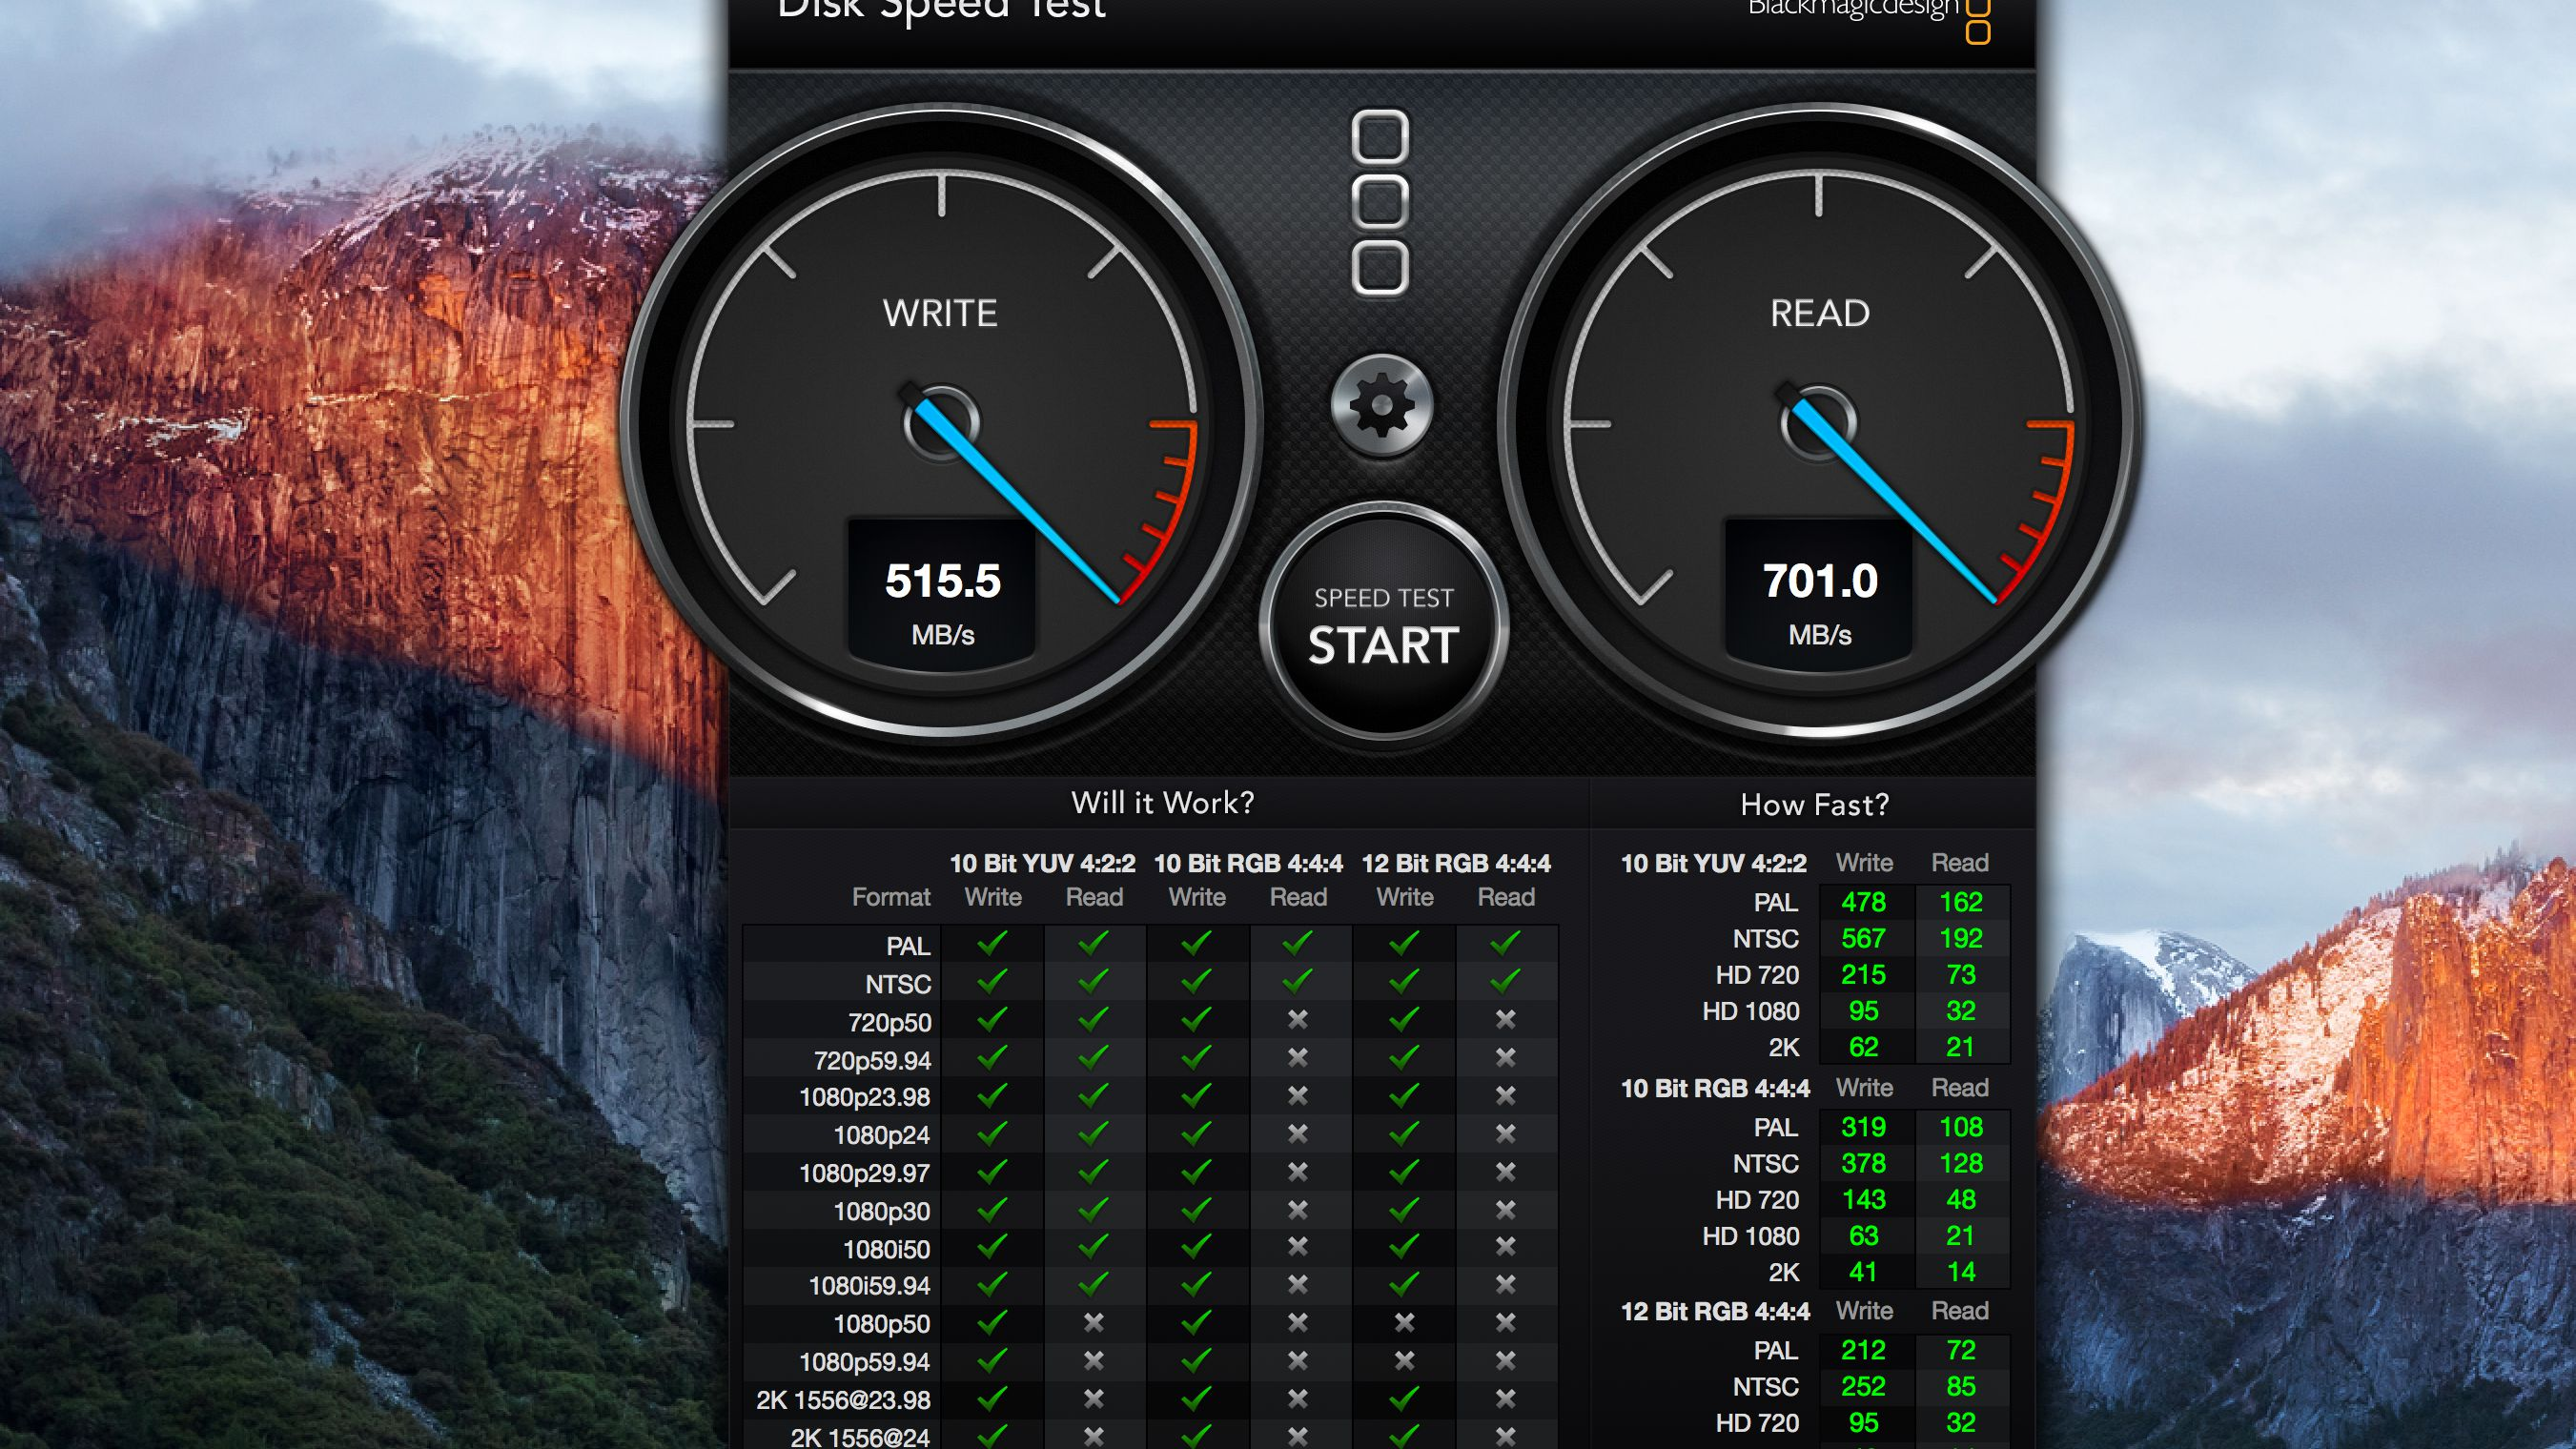 Blackmagic Disk Speed Test: How Fast Are Your Mac's Drives?